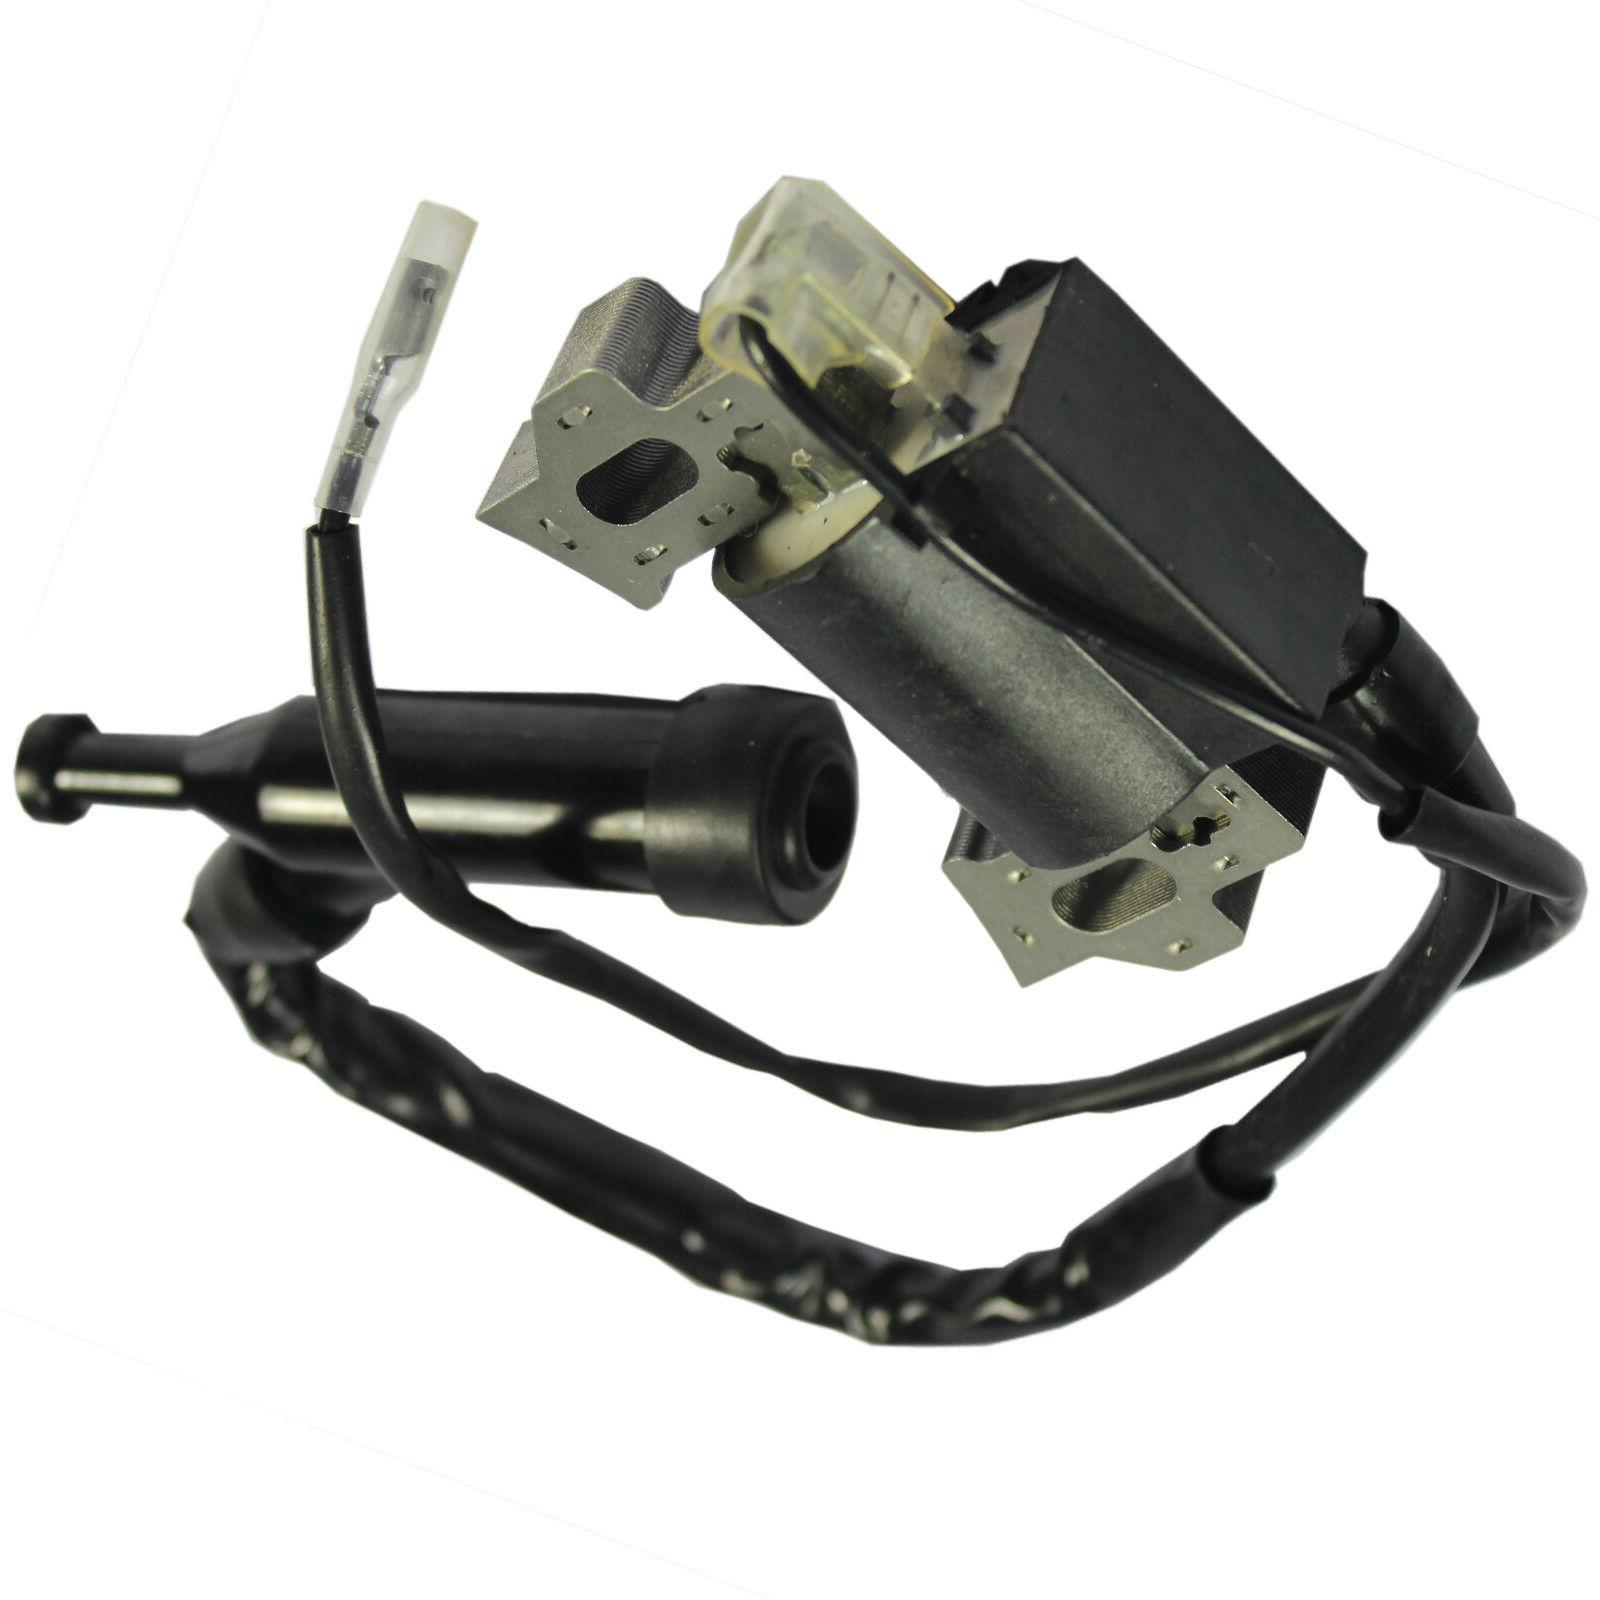 Magneto Parts Ignition For 5.5HP/GX200